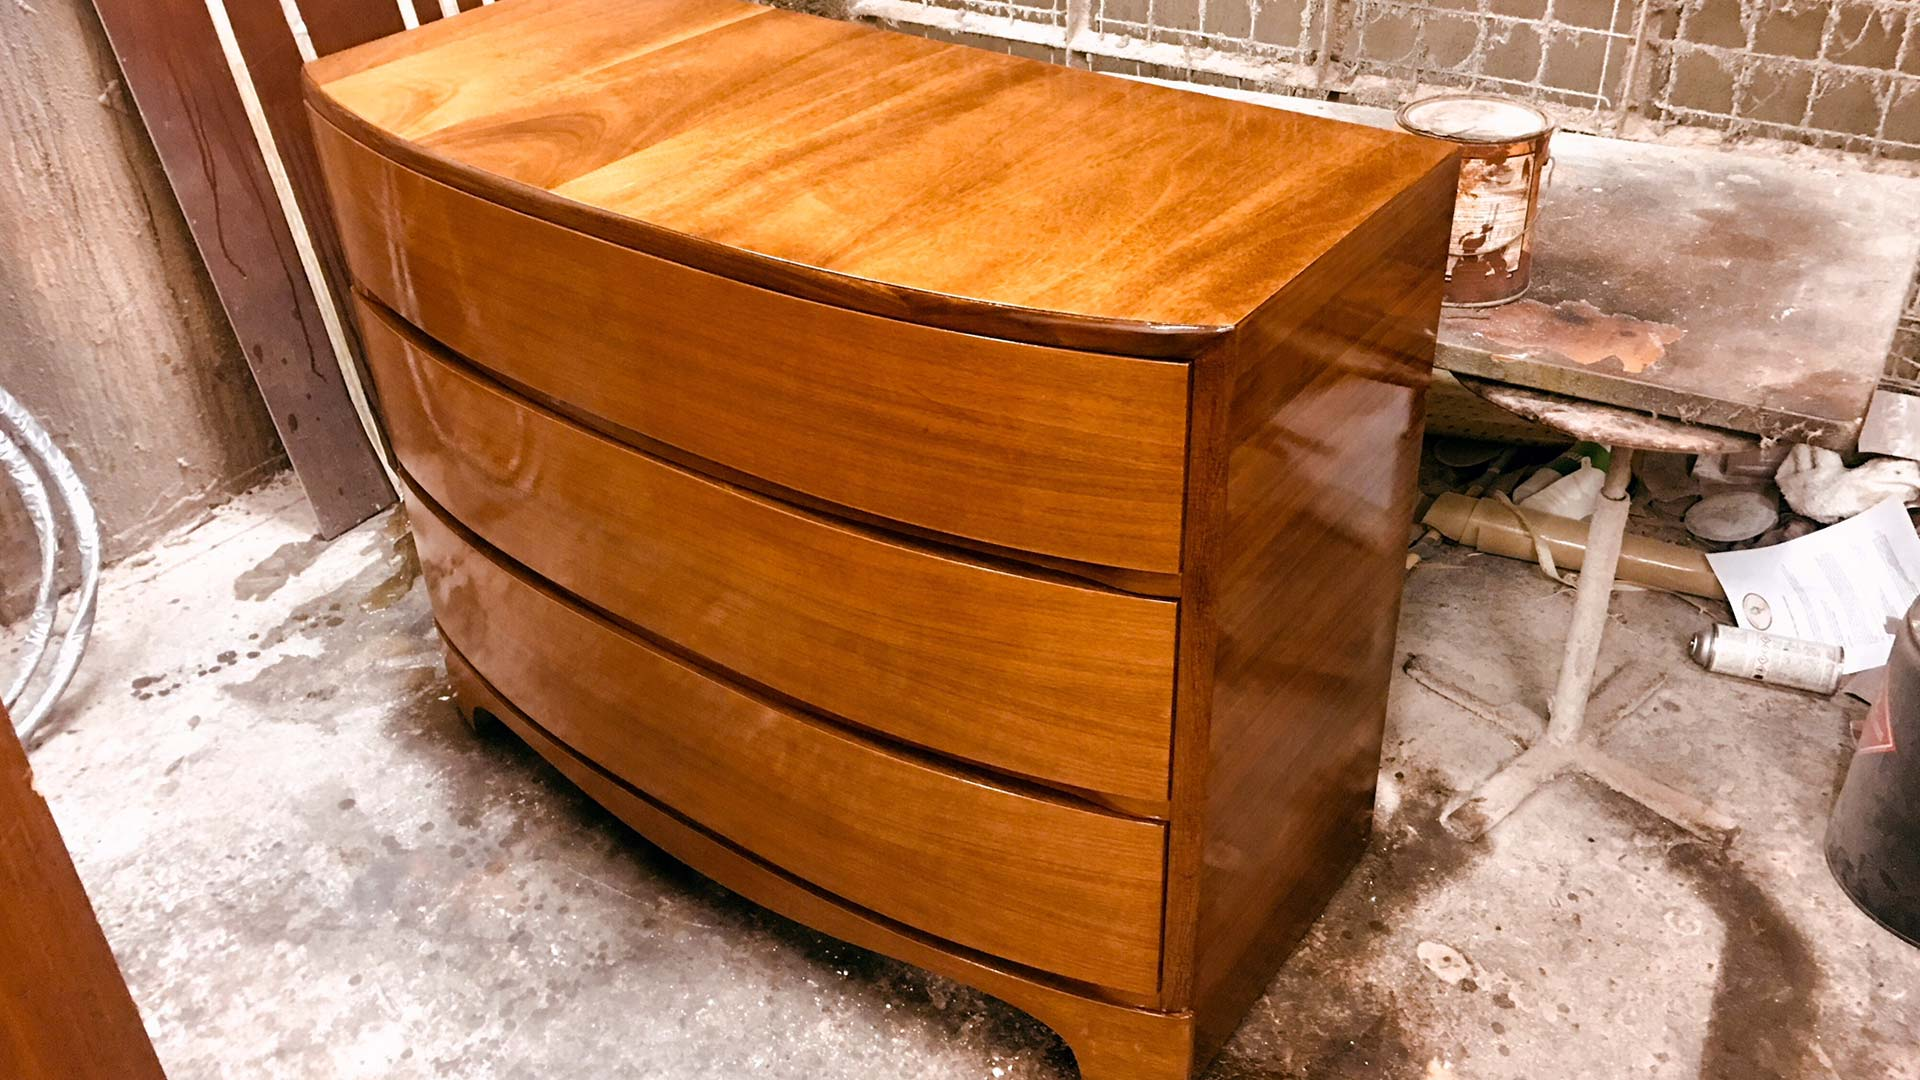 Progressive Furniture Refinishing Is Your Trusted Source For Repair And Service In Grand Rapids Mi Servicing West Michigan With